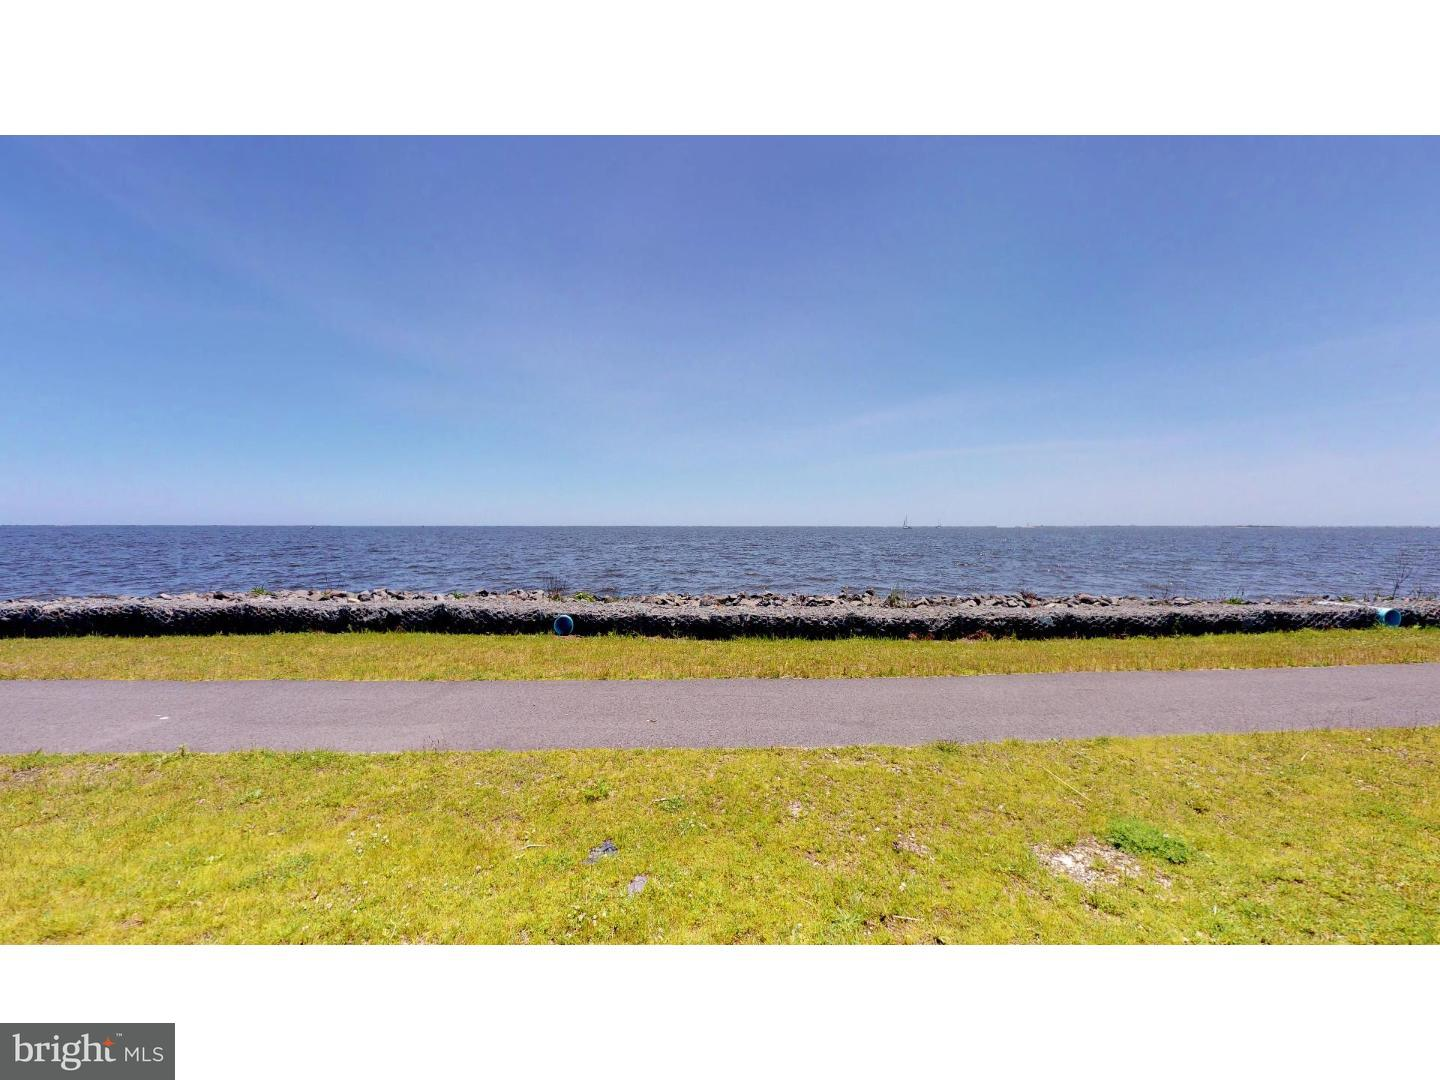 Single Family Home for Sale at 1600 BEACH BLVD Forked River, New Jersey 08731 United States